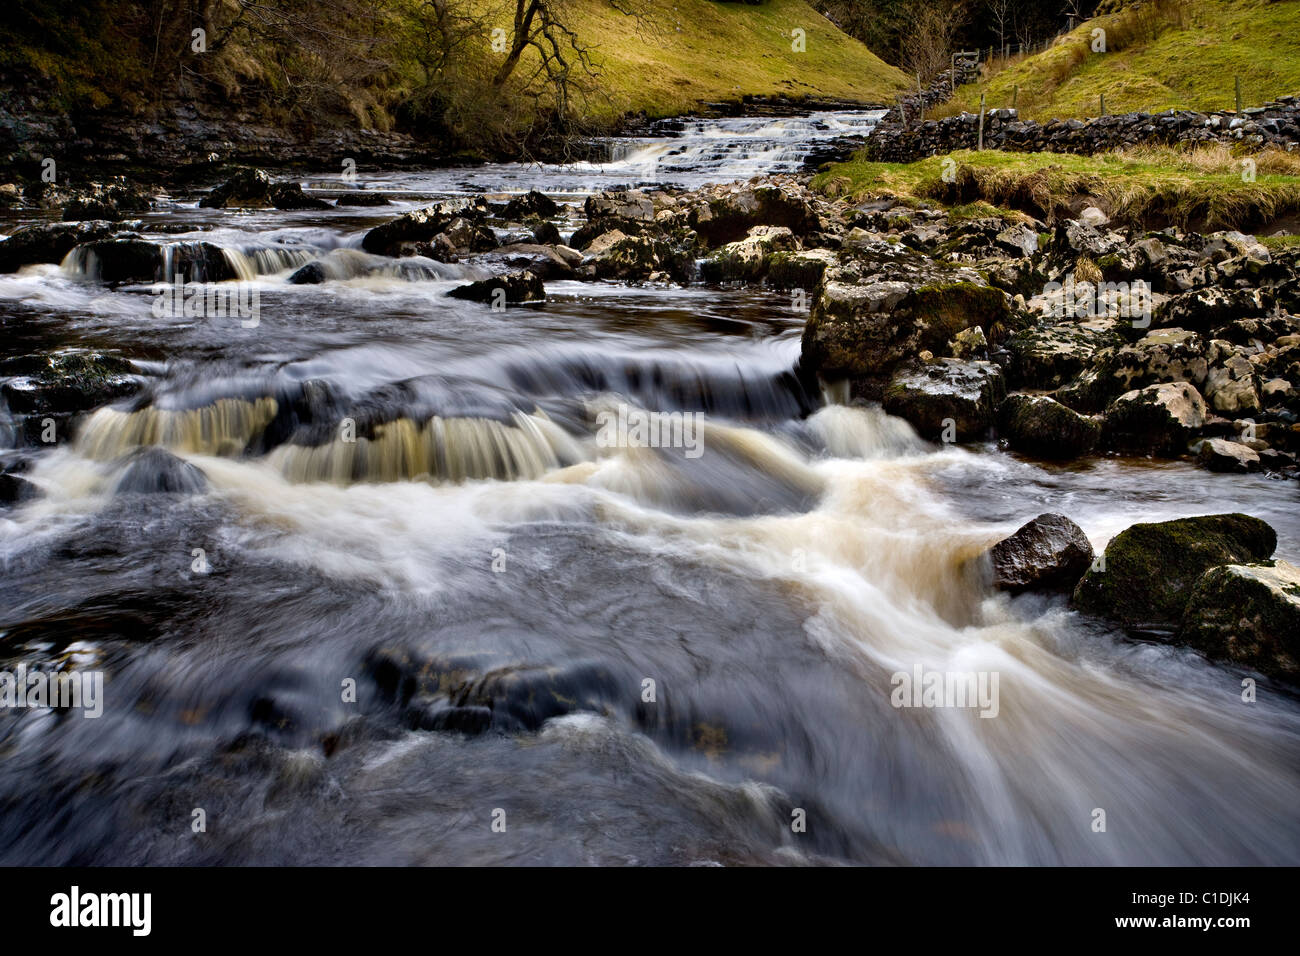 Waterfalls above Thornton Force, near Ingleton, Yorkshire Dales, England - Stock Image